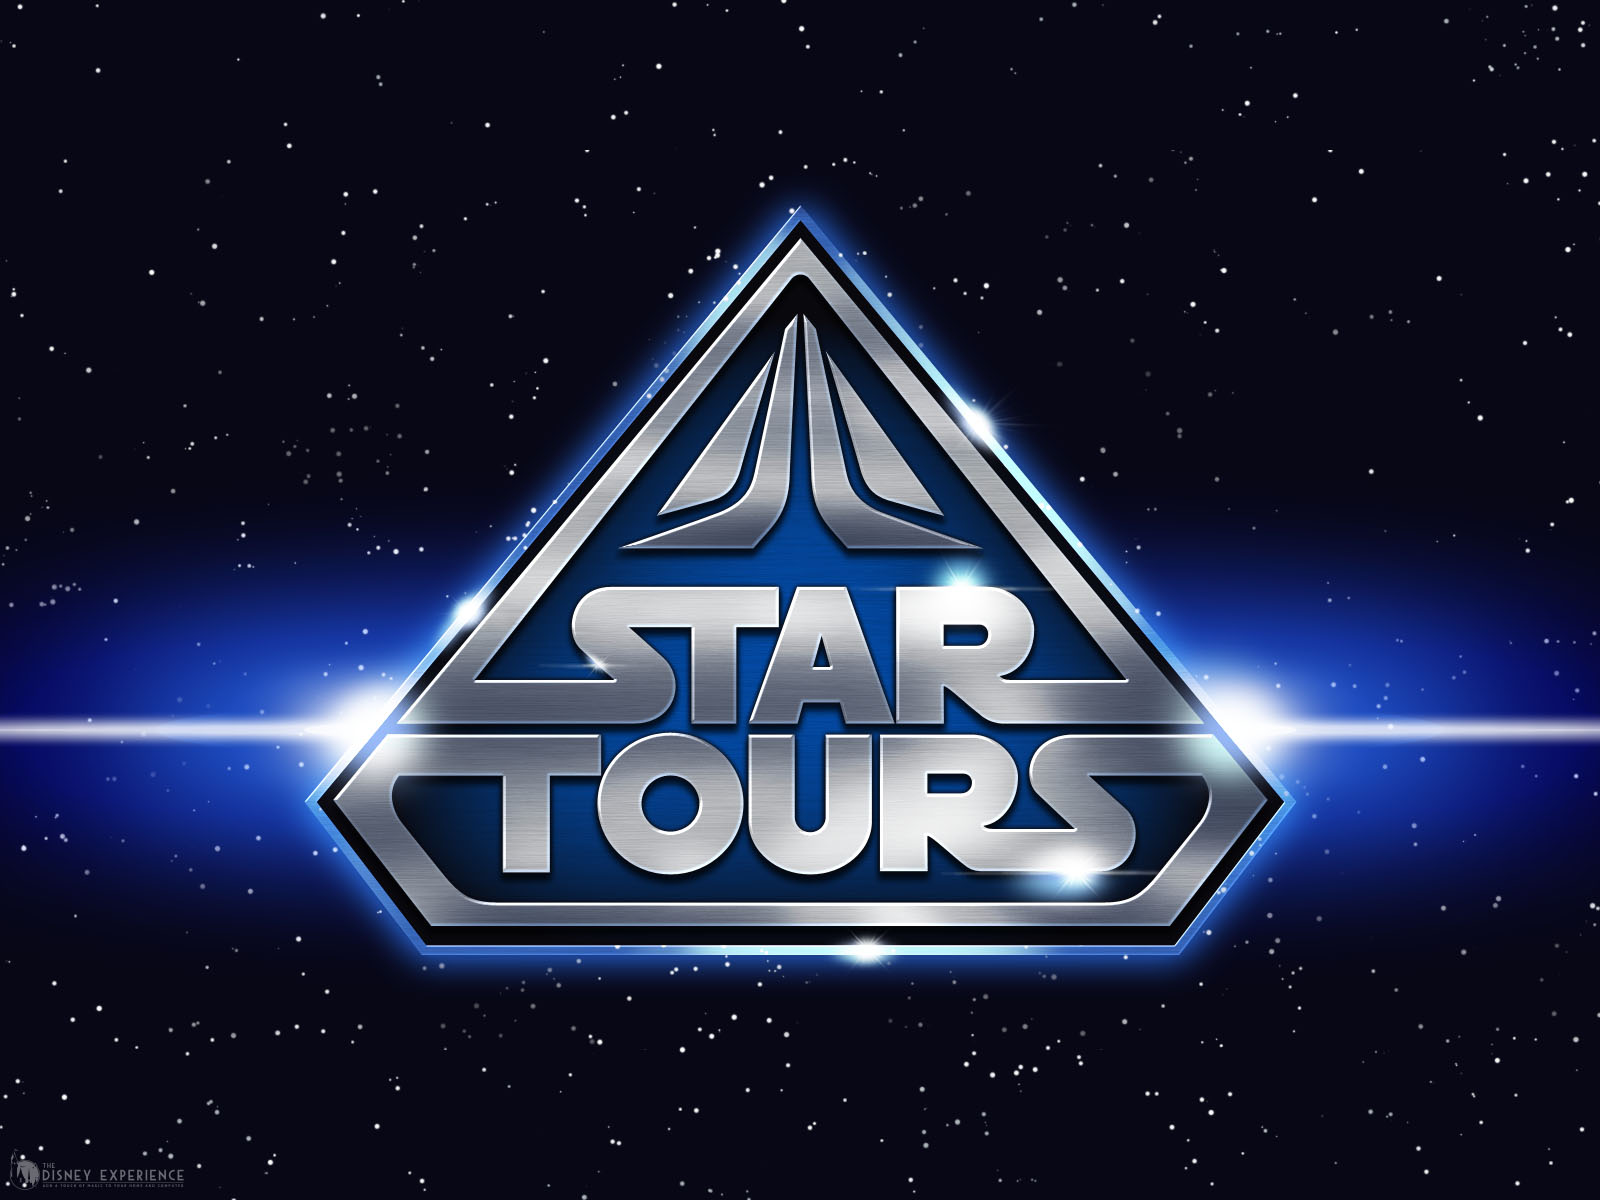 Star Tours Wallpaper